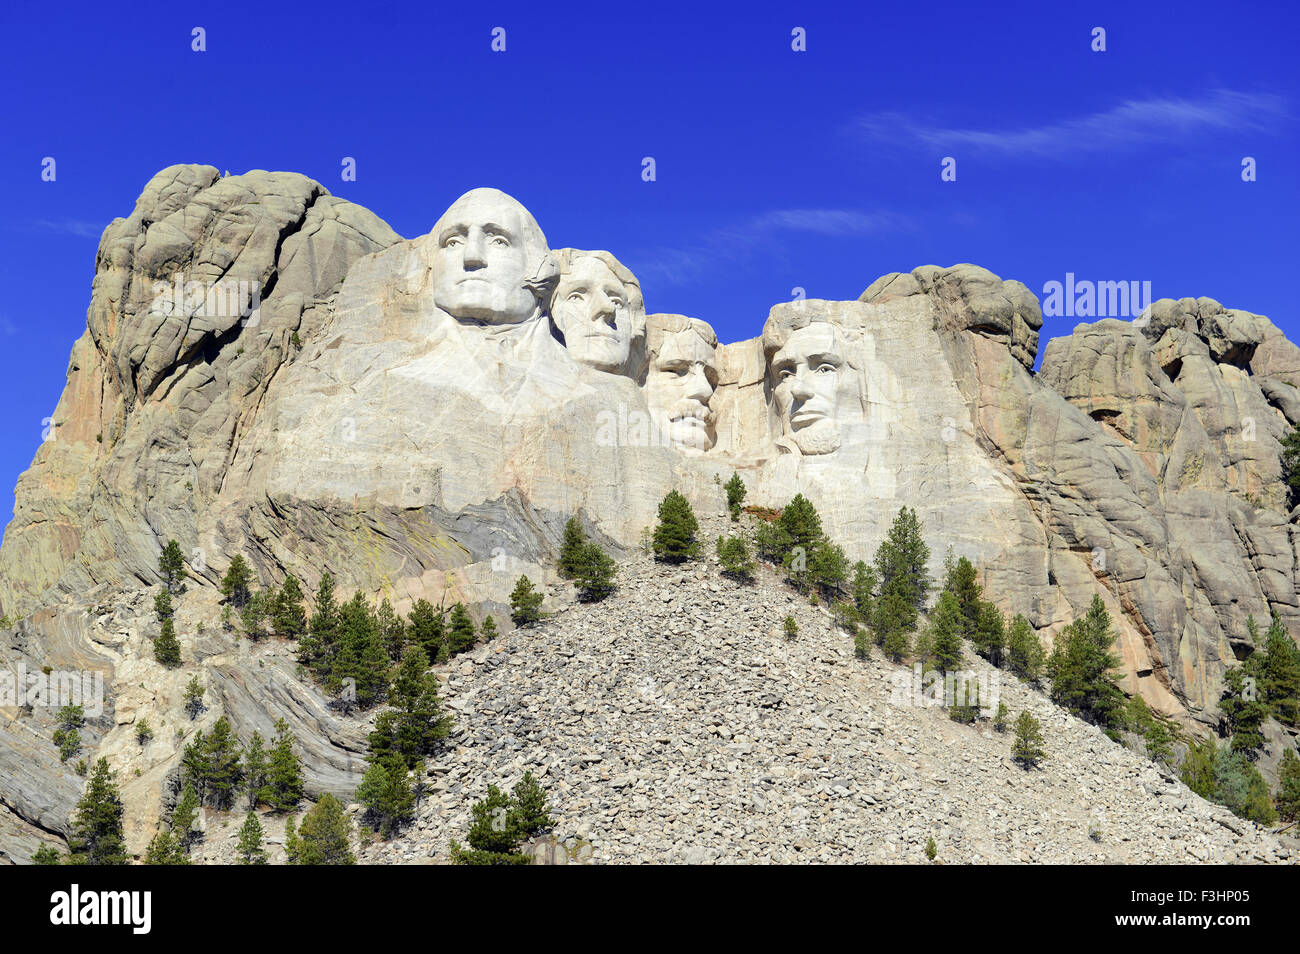 Mount Rushmore National Memorial, symbol of America located in the Black Hills, South Dakota, USA Stock Photo